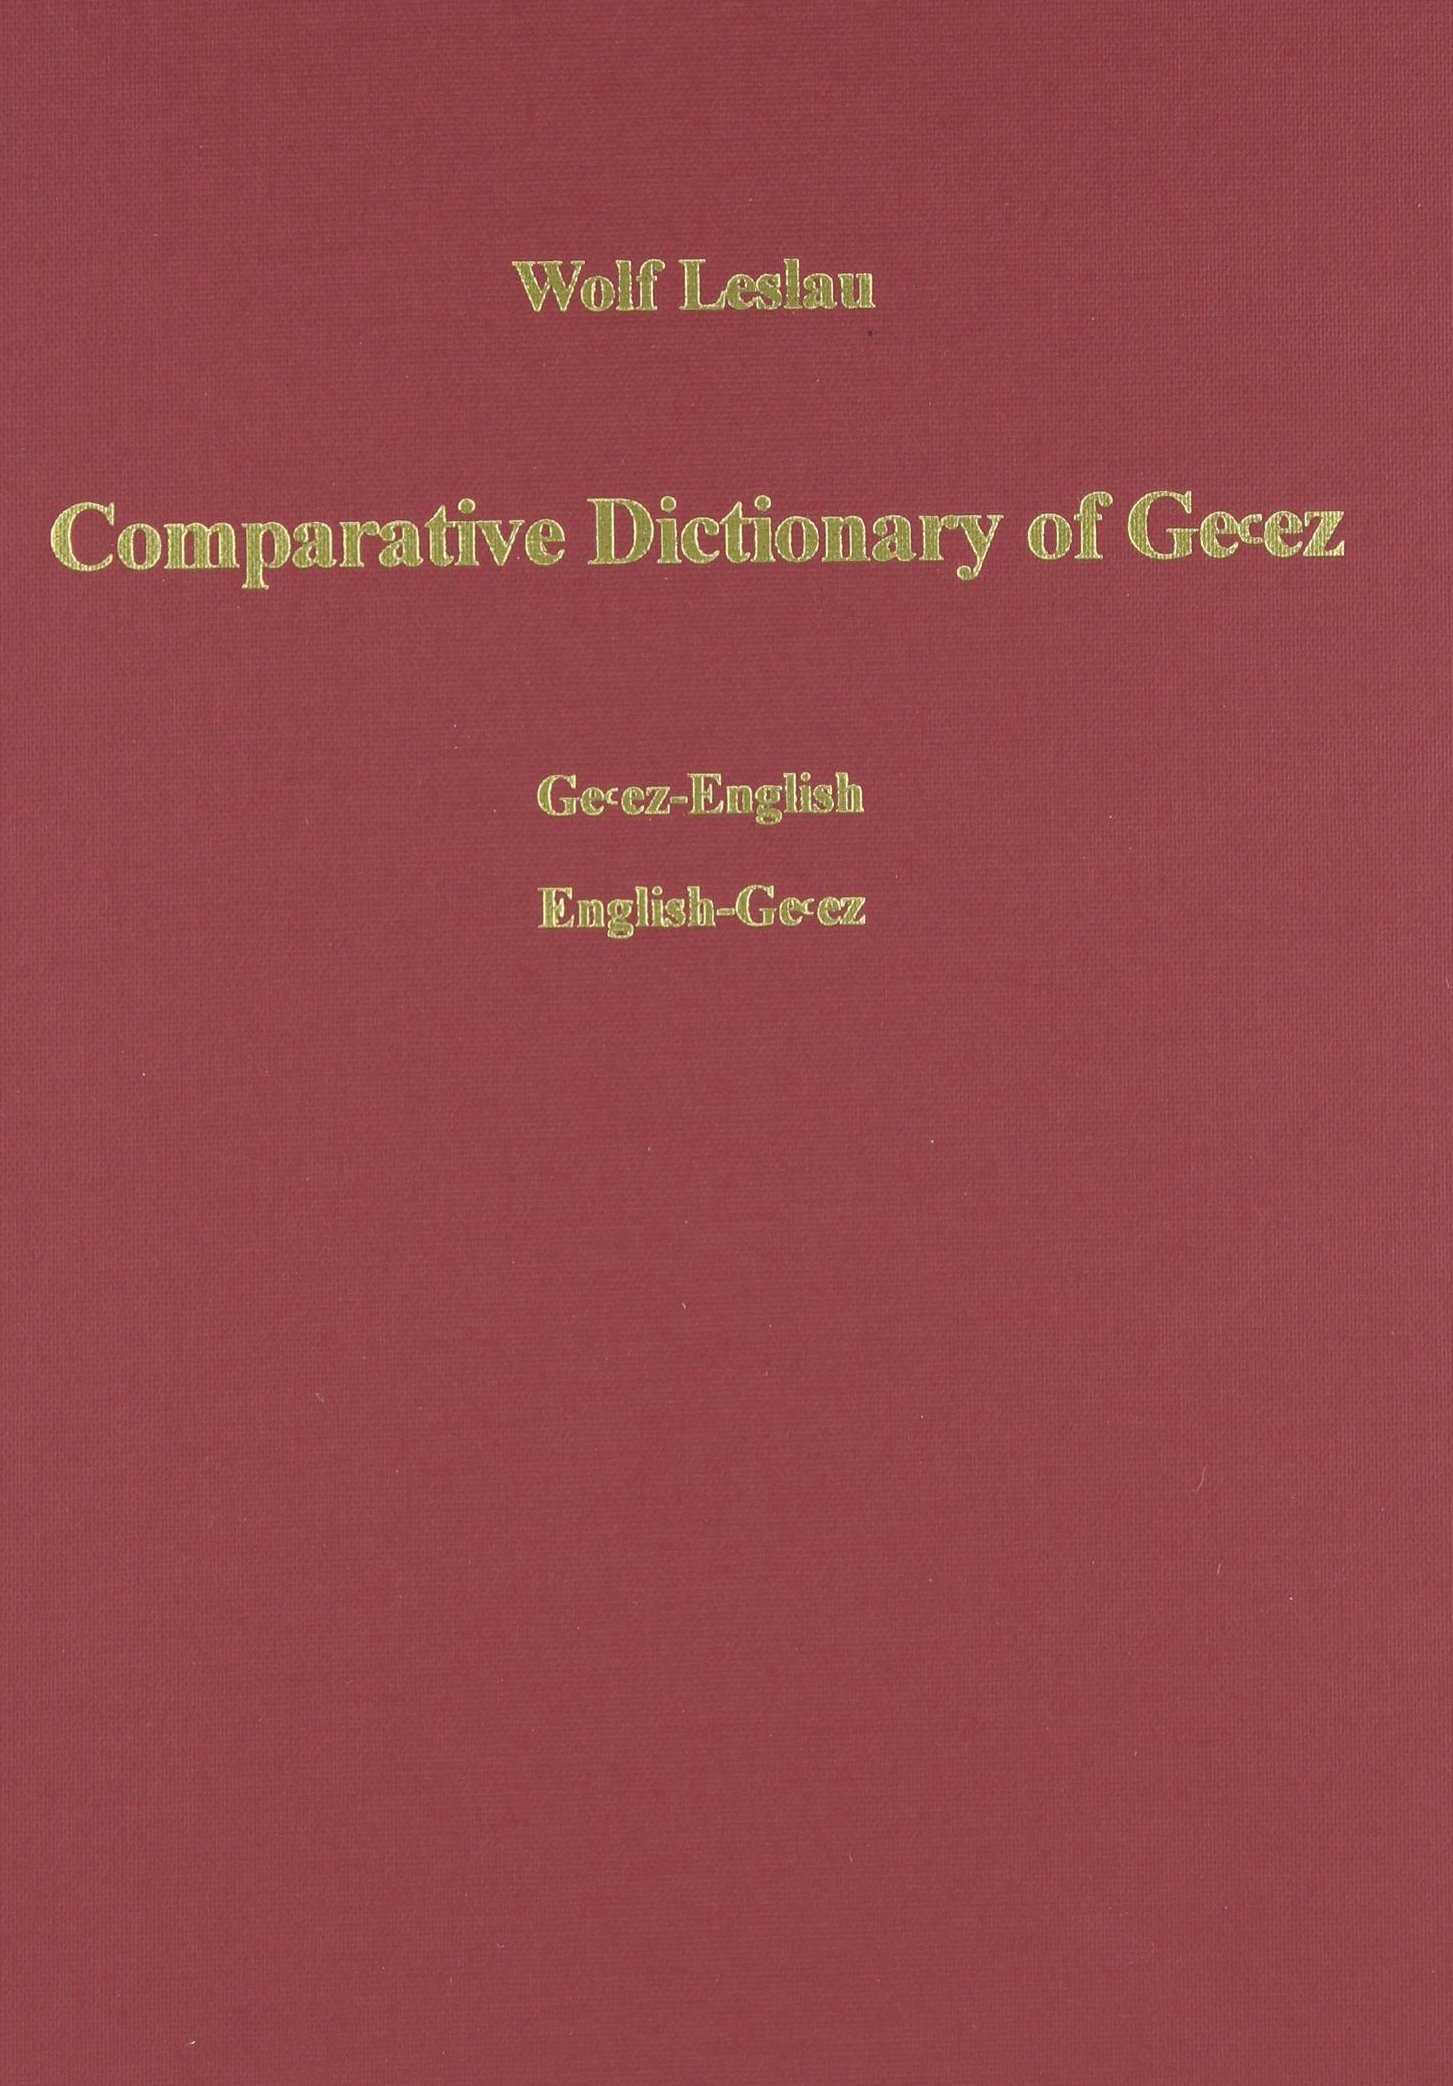 Comparative Dictionary of Ge'ez (Classical Ethiopic): Ge'ez-English /English-Ge'ez. With an index of the Semitic roots